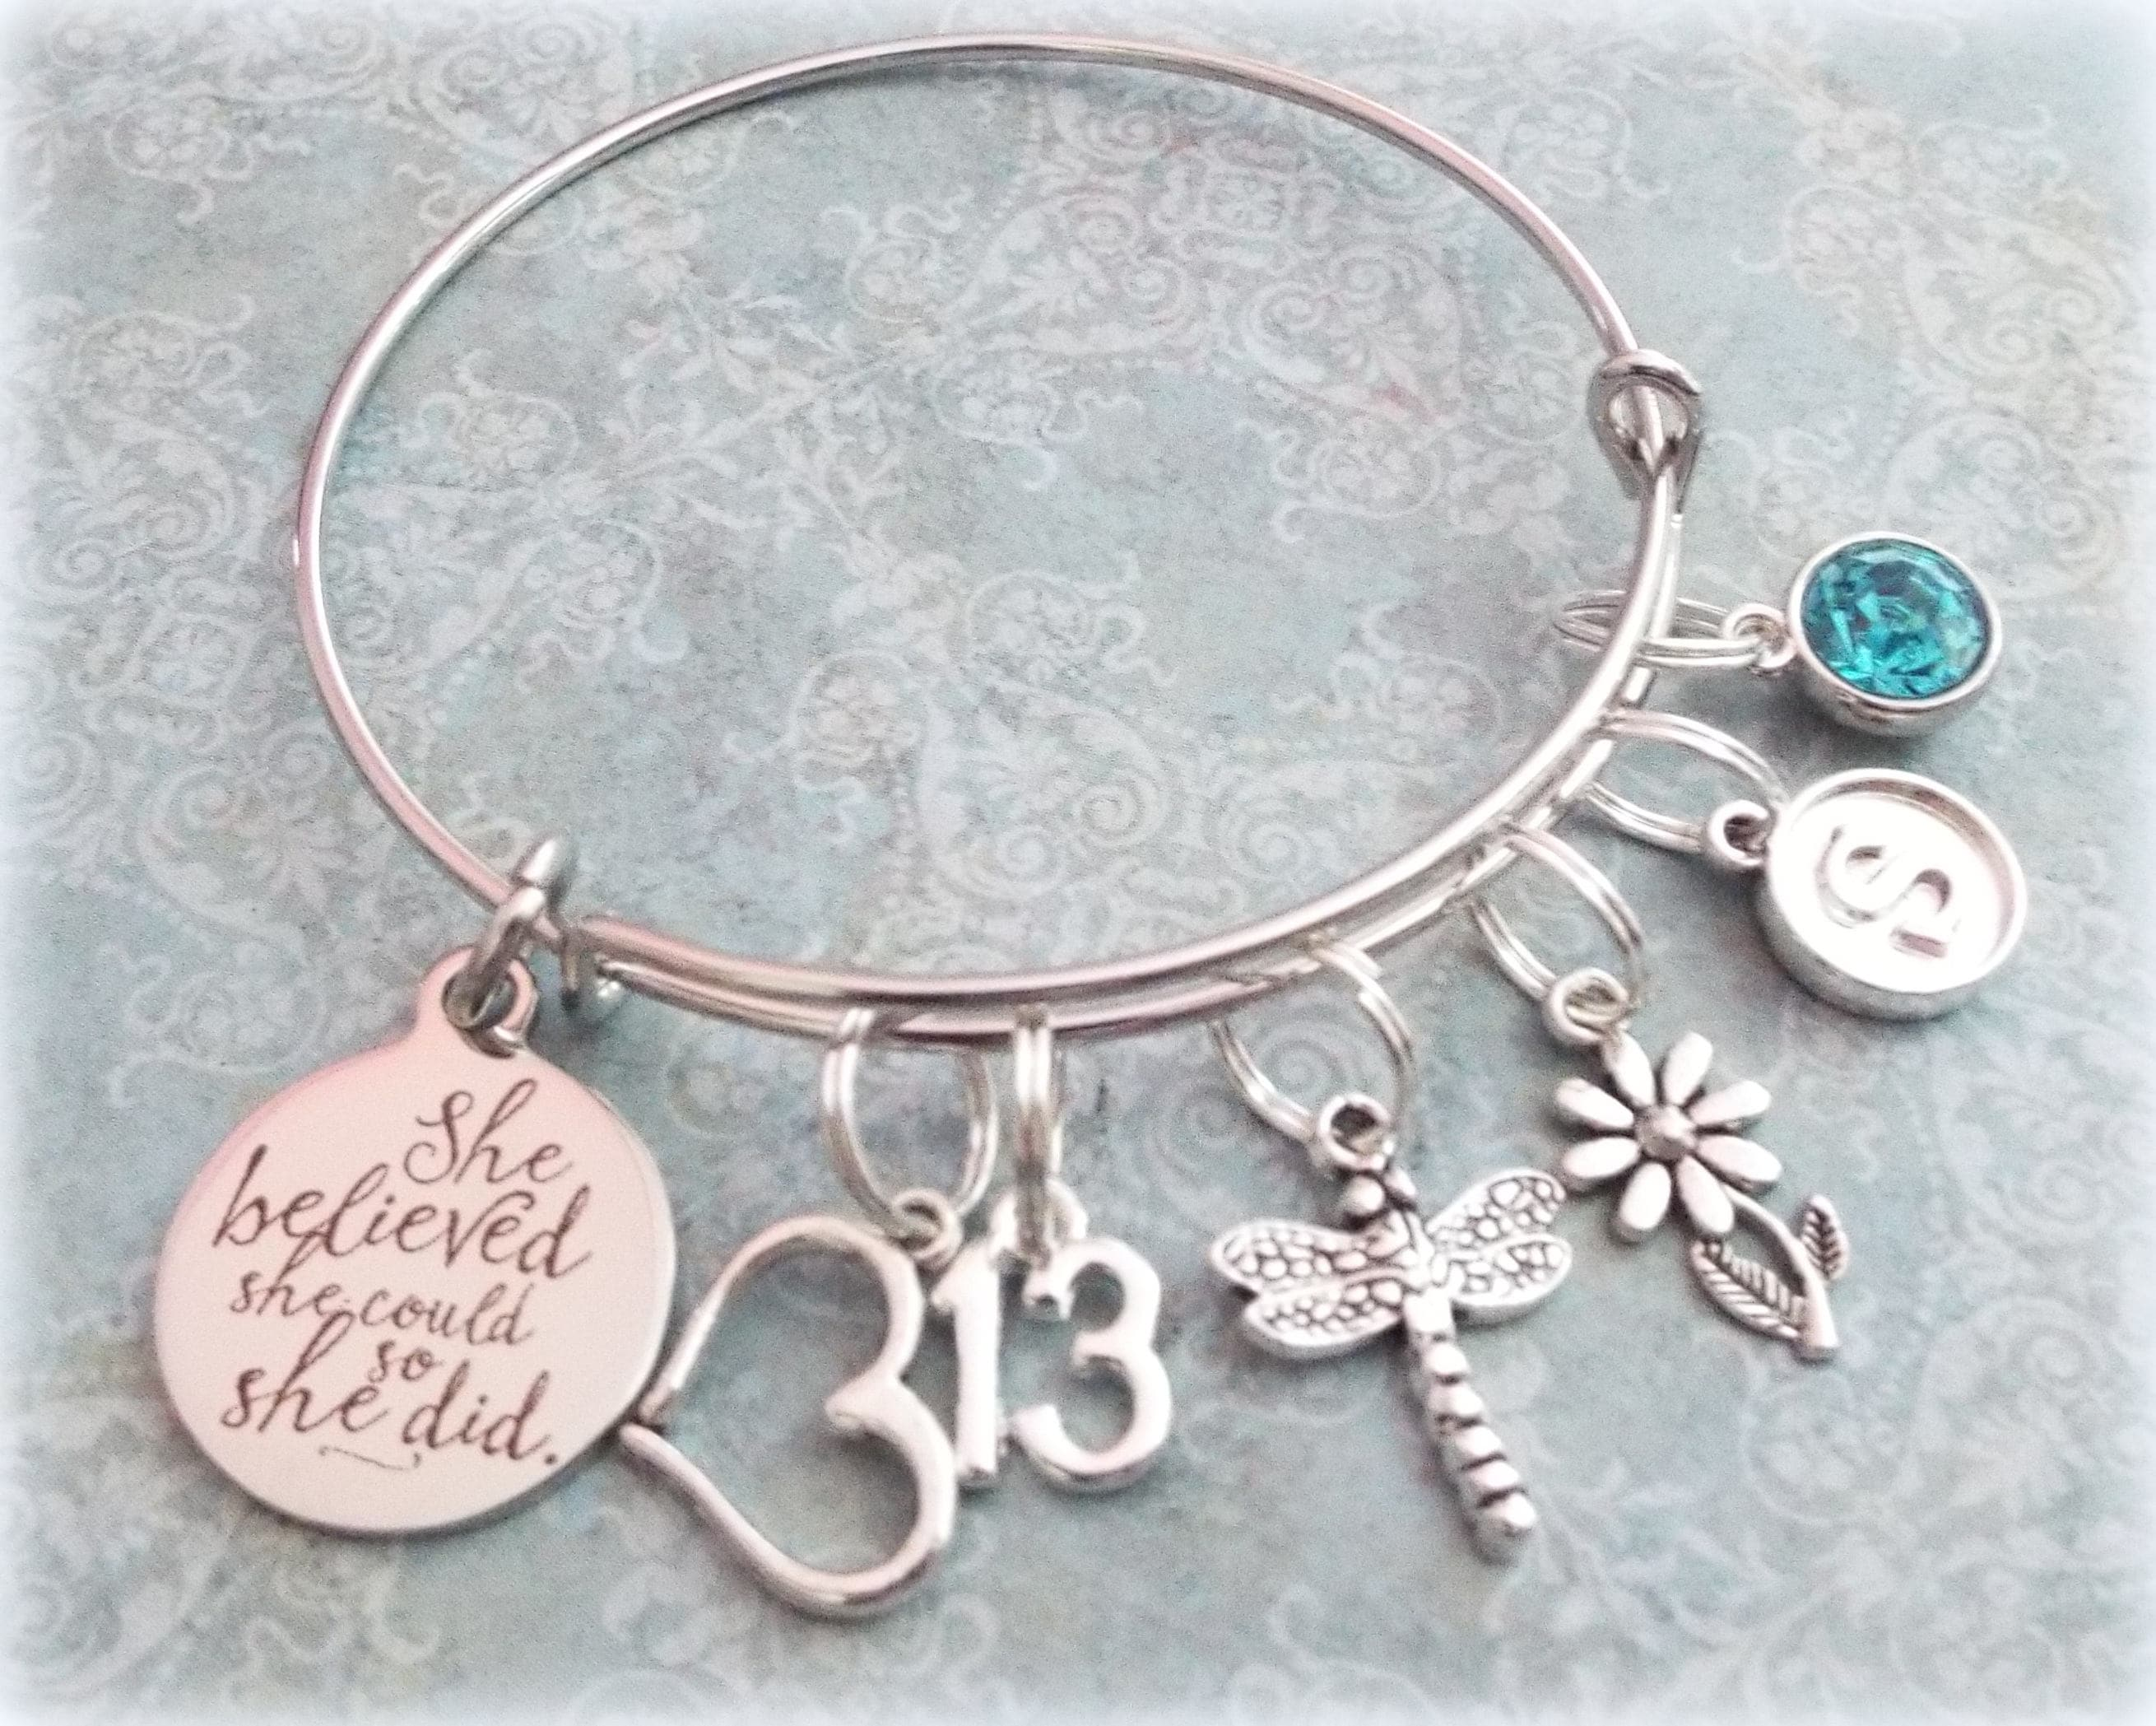 13th Birthday Girl Charm Bracelet Teenage Daughter